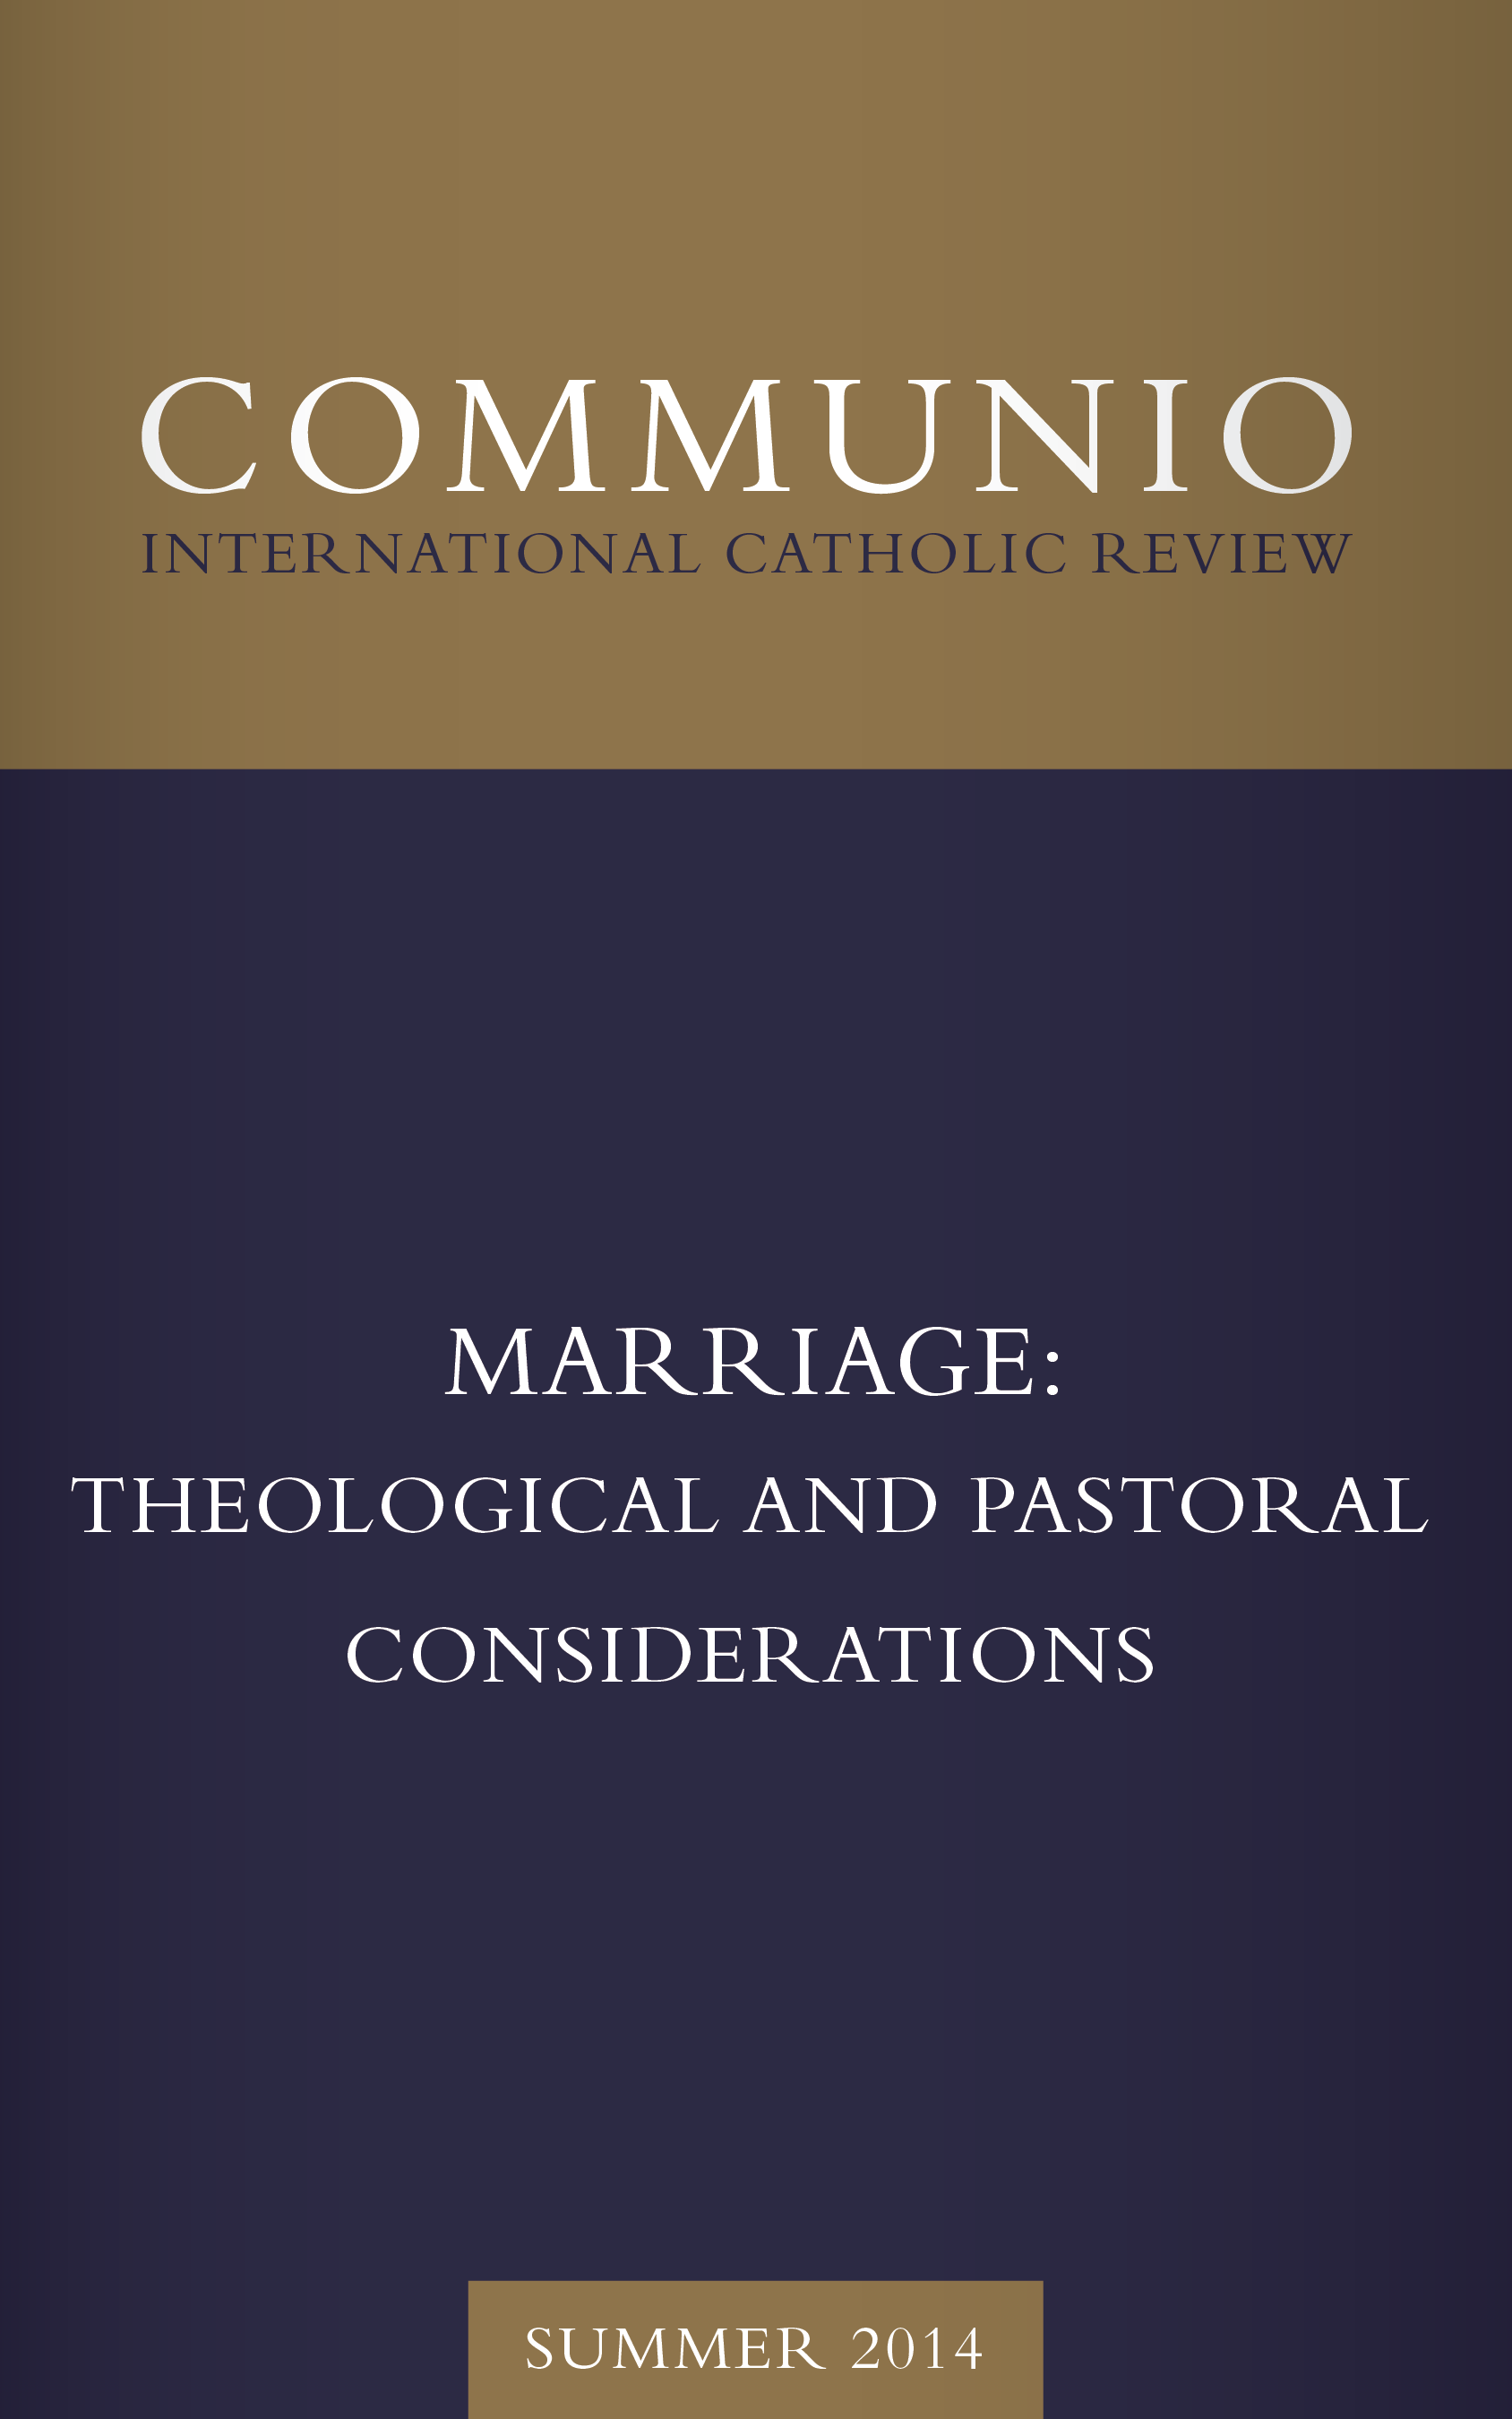 Communio - Summer 2014 - Marriage: Theological and Pastoral Considerations